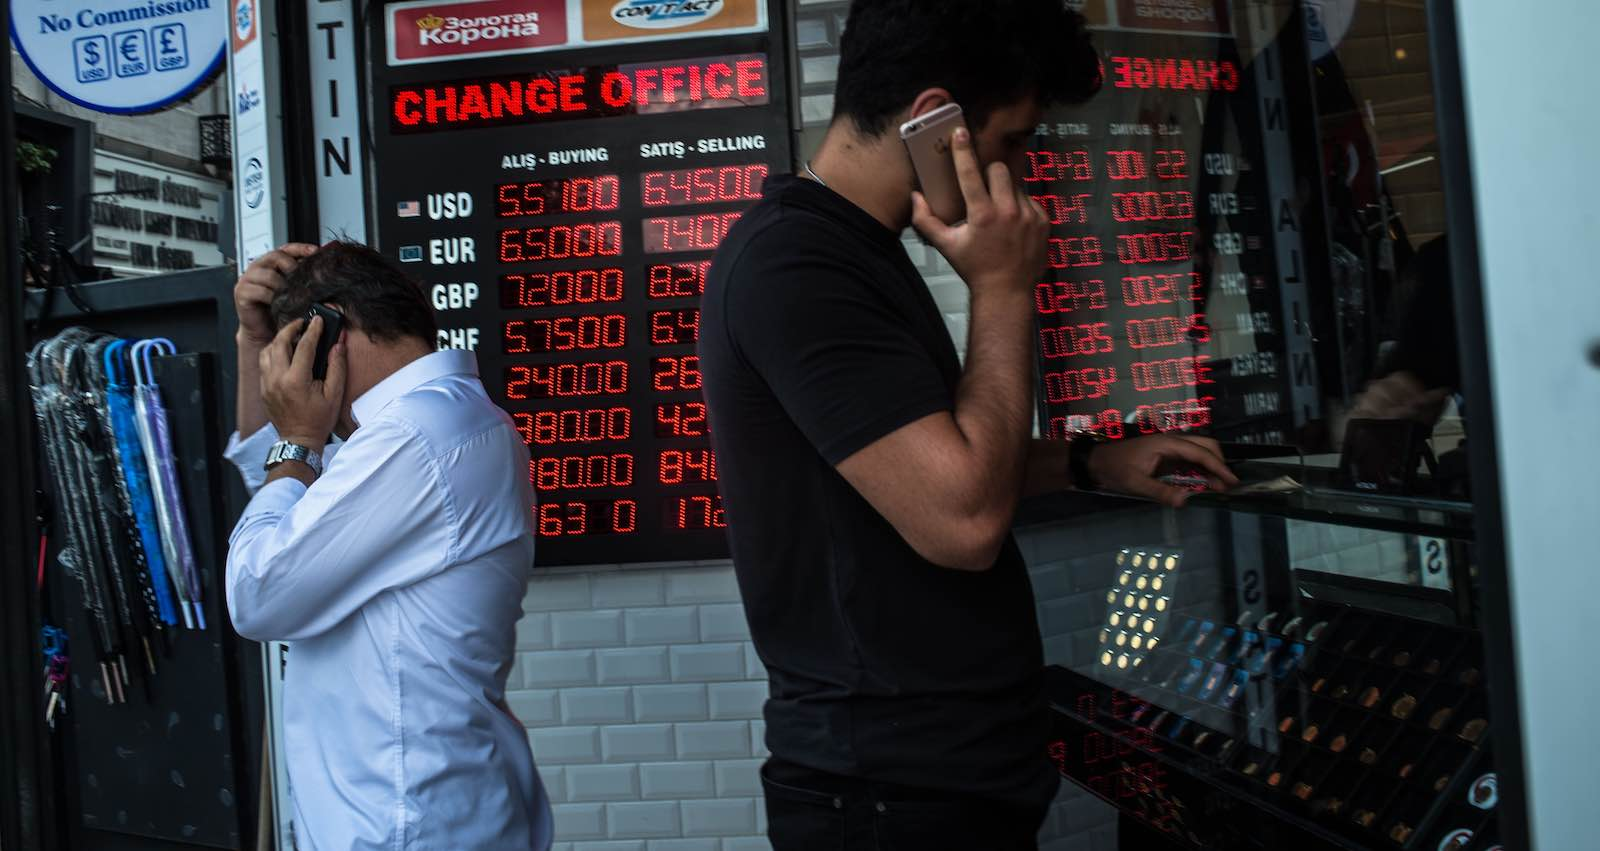 A currency exchange office in Istanbul (Photo: Yasin Akgul/Getty)